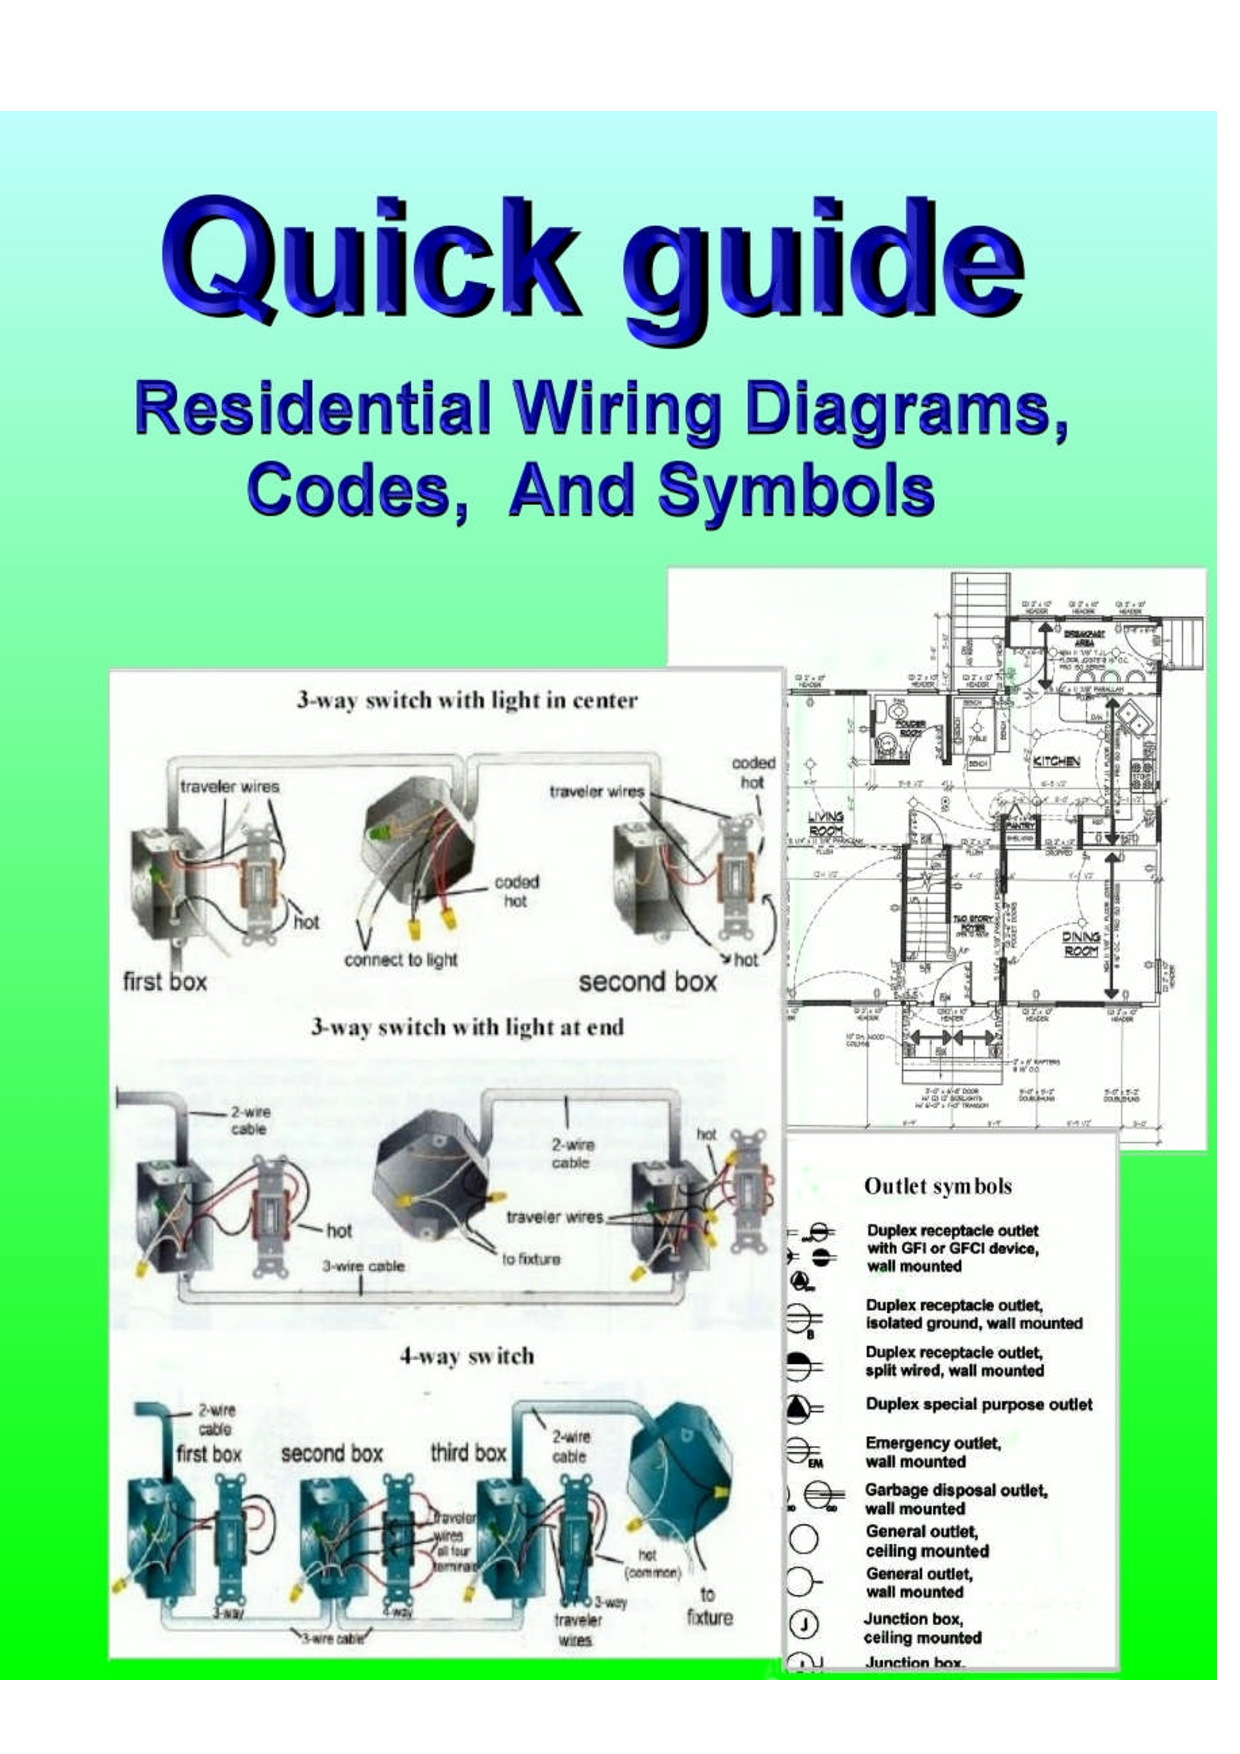 Home Electrical Wiring Diagramspdf Download Legal Documents 39 House Diagrams Further Australia Light Switch Pages With Many And Illustrations A Step By Guide